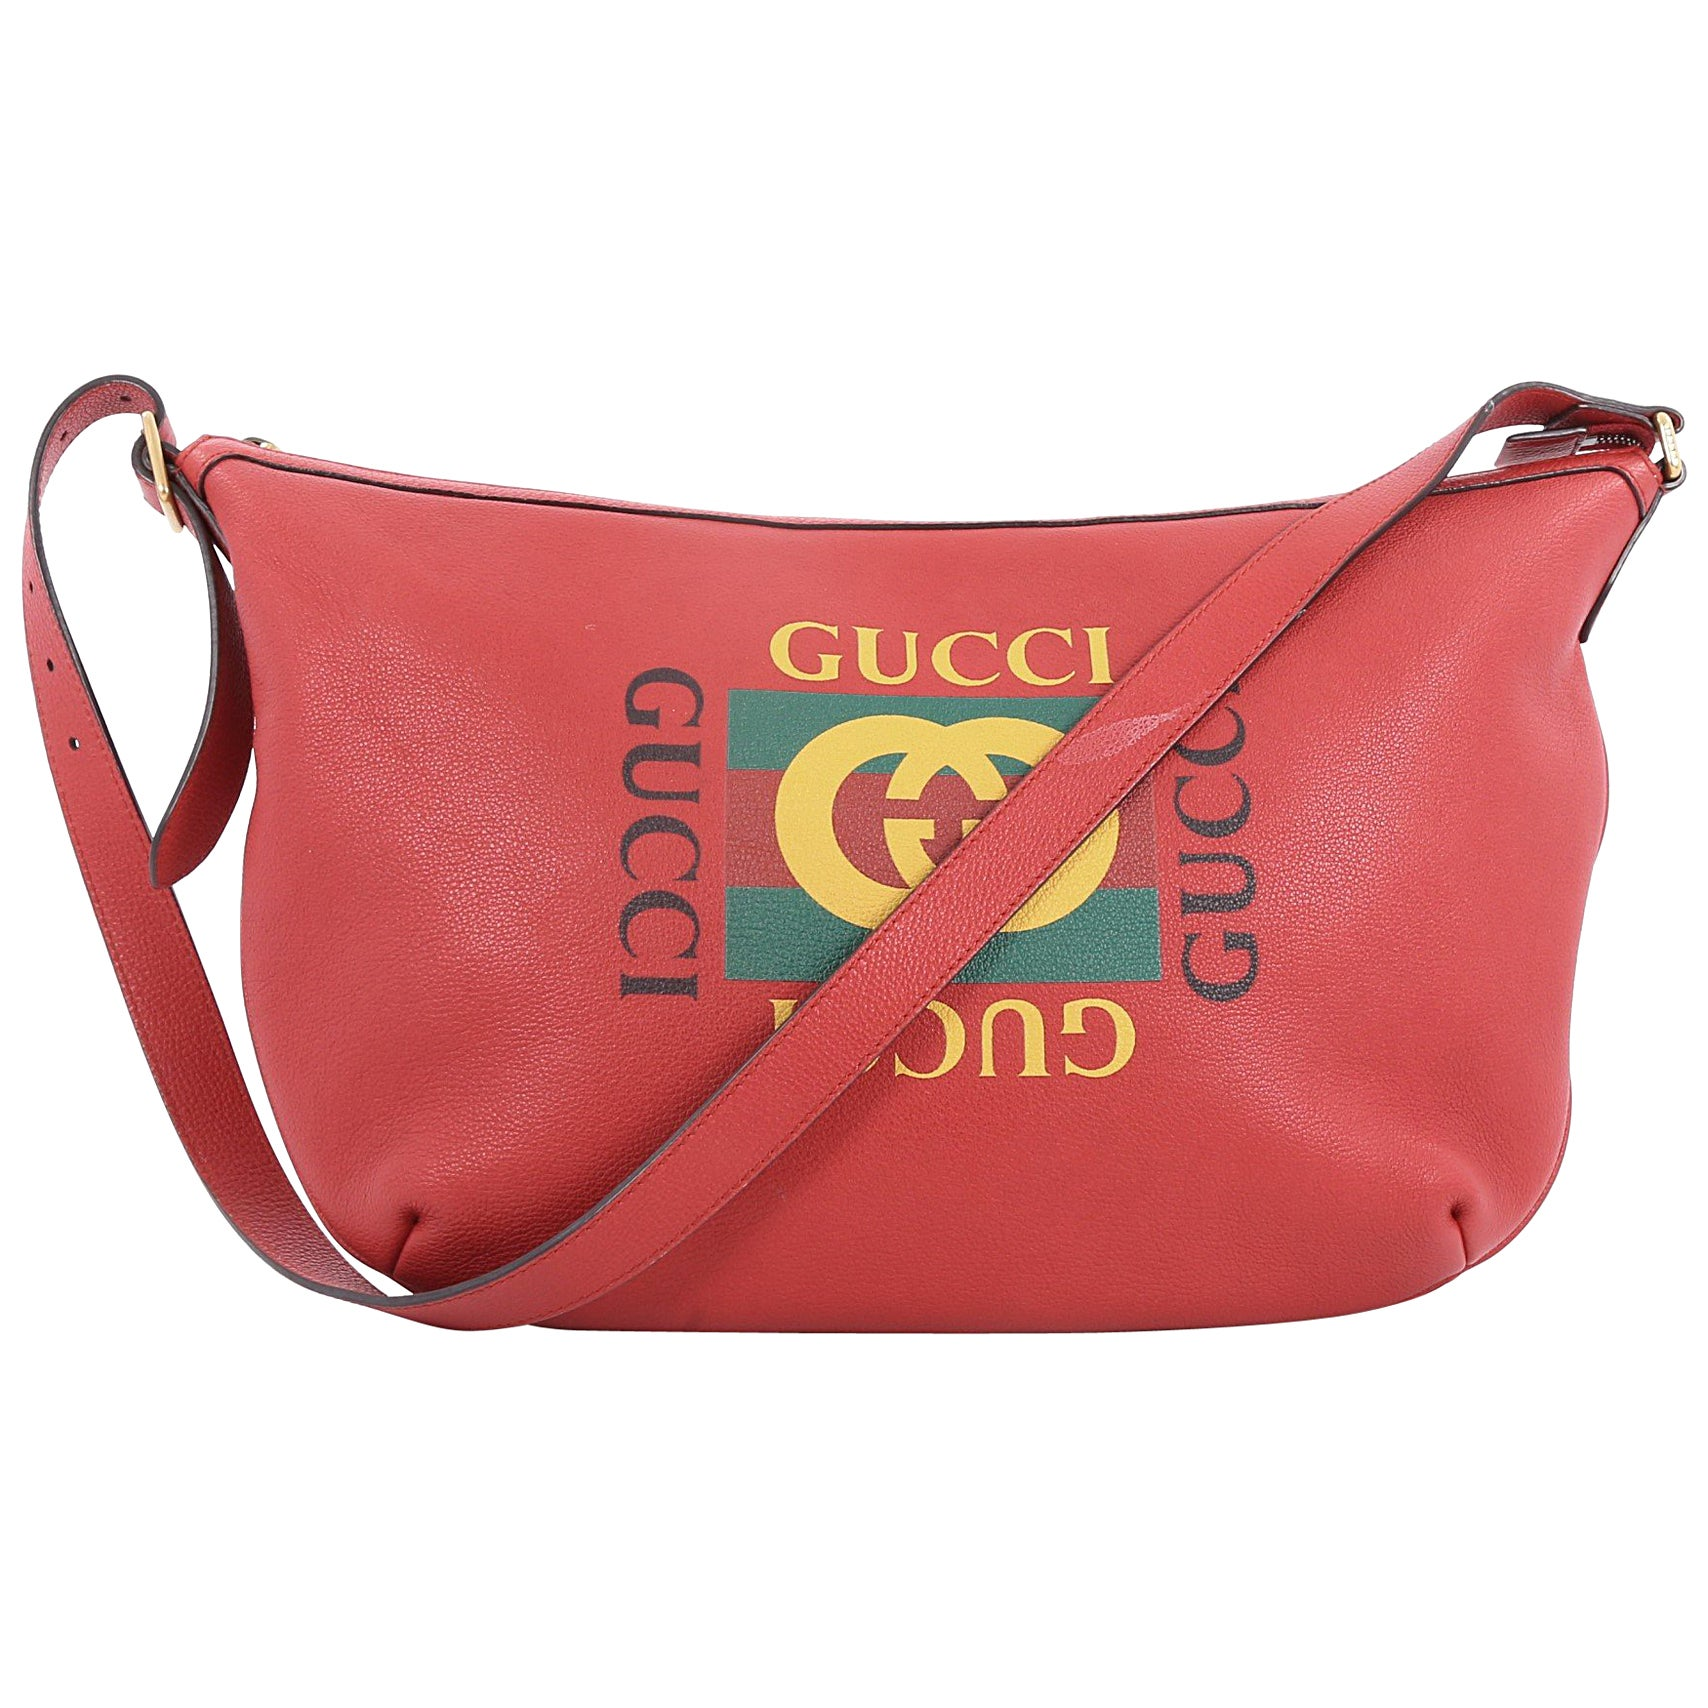 23532dc0b5f32c Gucci Logo Half-Moon Hobo Printed Leather at 1stdibs